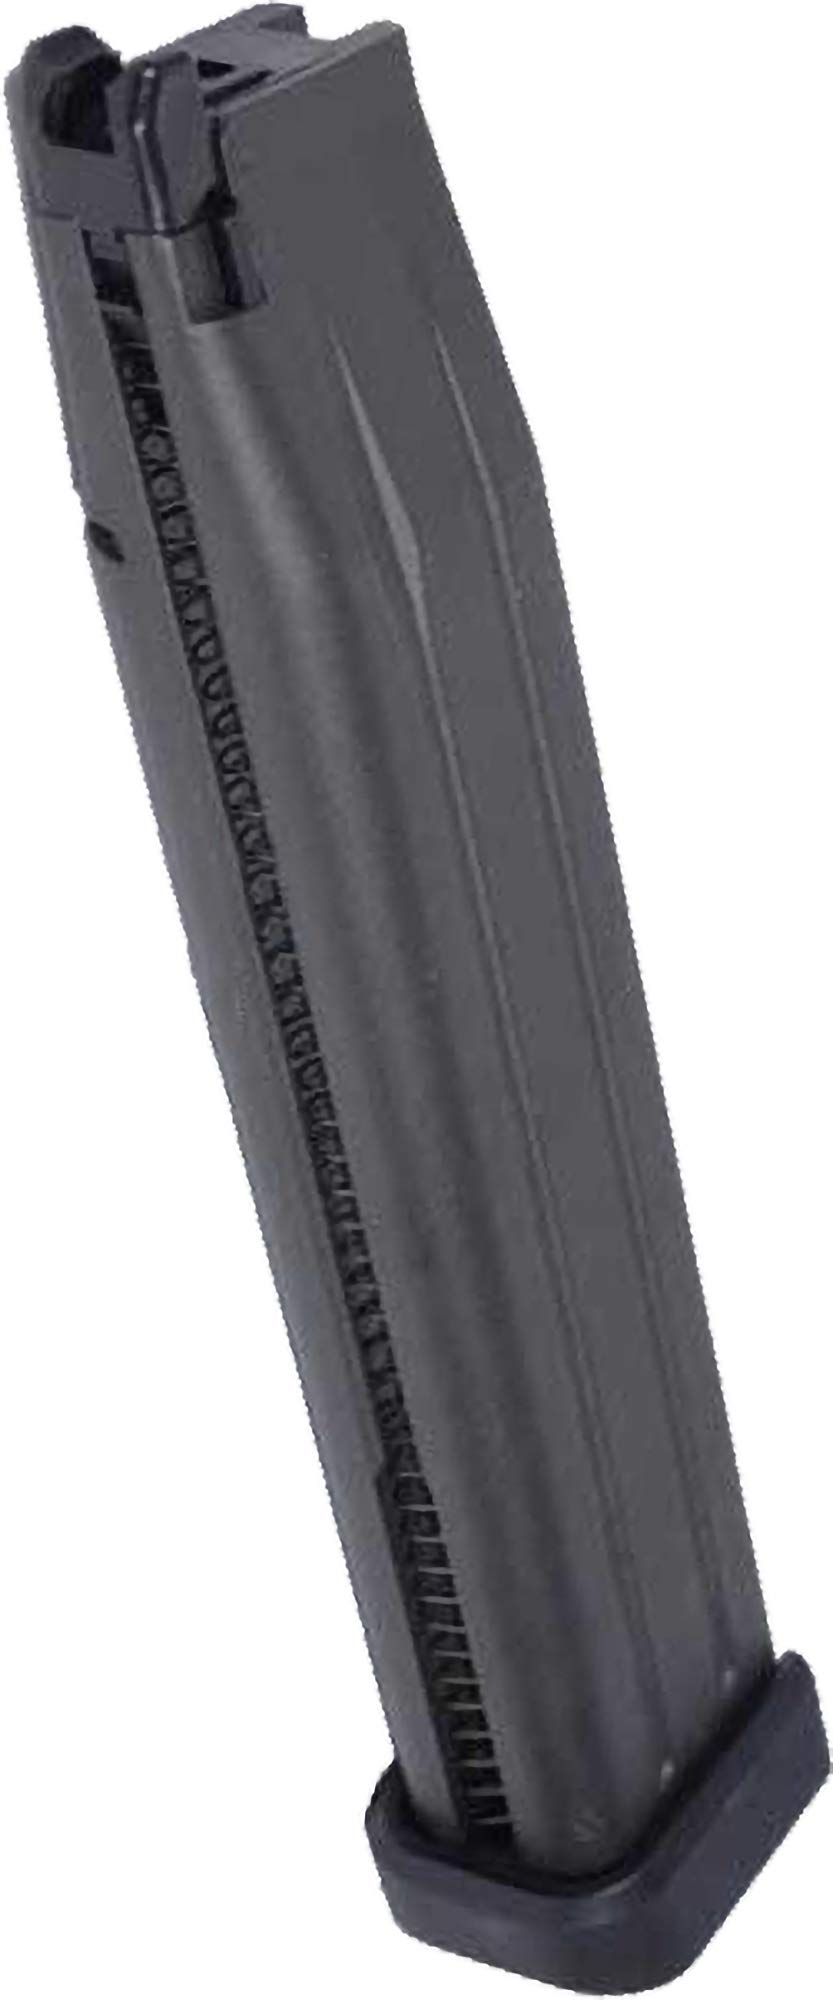 Evike WE 52rd Extended Magazine for WE Hi-Capa Airsoft GBB Gas Blowback Pistols by Evike